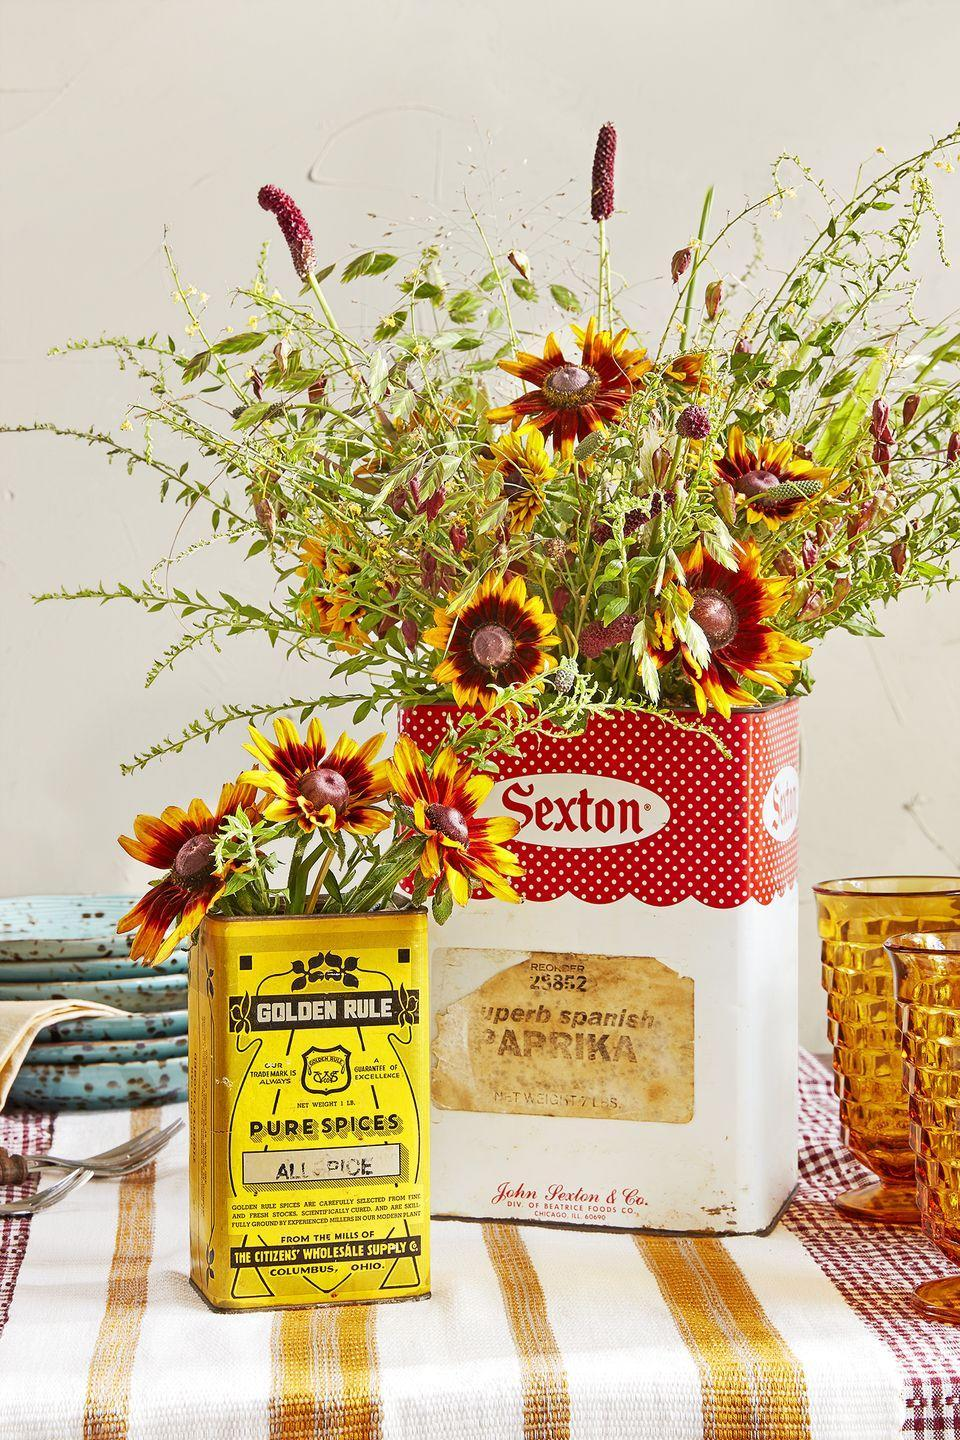 """<p>Decorate your dinner table, dessert display, or kitchen island with these inexpensive arrangements fashioned from wildflowers and spice tins. Feel free to use containers in various heights, sizes, and designs—just be sure they feature autumn's rich reds, bright oranges, and golden hues.</p><p><a class=""""link rapid-noclick-resp"""" href=""""https://go.redirectingat.com?id=74968X1596630&url=https%3A%2F%2Fwww.ebay.com%2Fsch%2Fi.html%3F_from%3DR40%26_trksid%3Dp2380057.m570.l1313.TR0.TRC0.A0.H0.Xspice%2Btin.TRS2%26_nkw%3Dspice%2Btins%26_sacat%3D0&sref=https%3A%2F%2Fwww.countryliving.com%2Fentertaining%2Fg1371%2Fthanksgiving-decorations%2F"""" rel=""""nofollow noopener"""" target=""""_blank"""" data-ylk=""""slk:SHOP SPICE TINS"""">SHOP SPICE TINS</a></p>"""